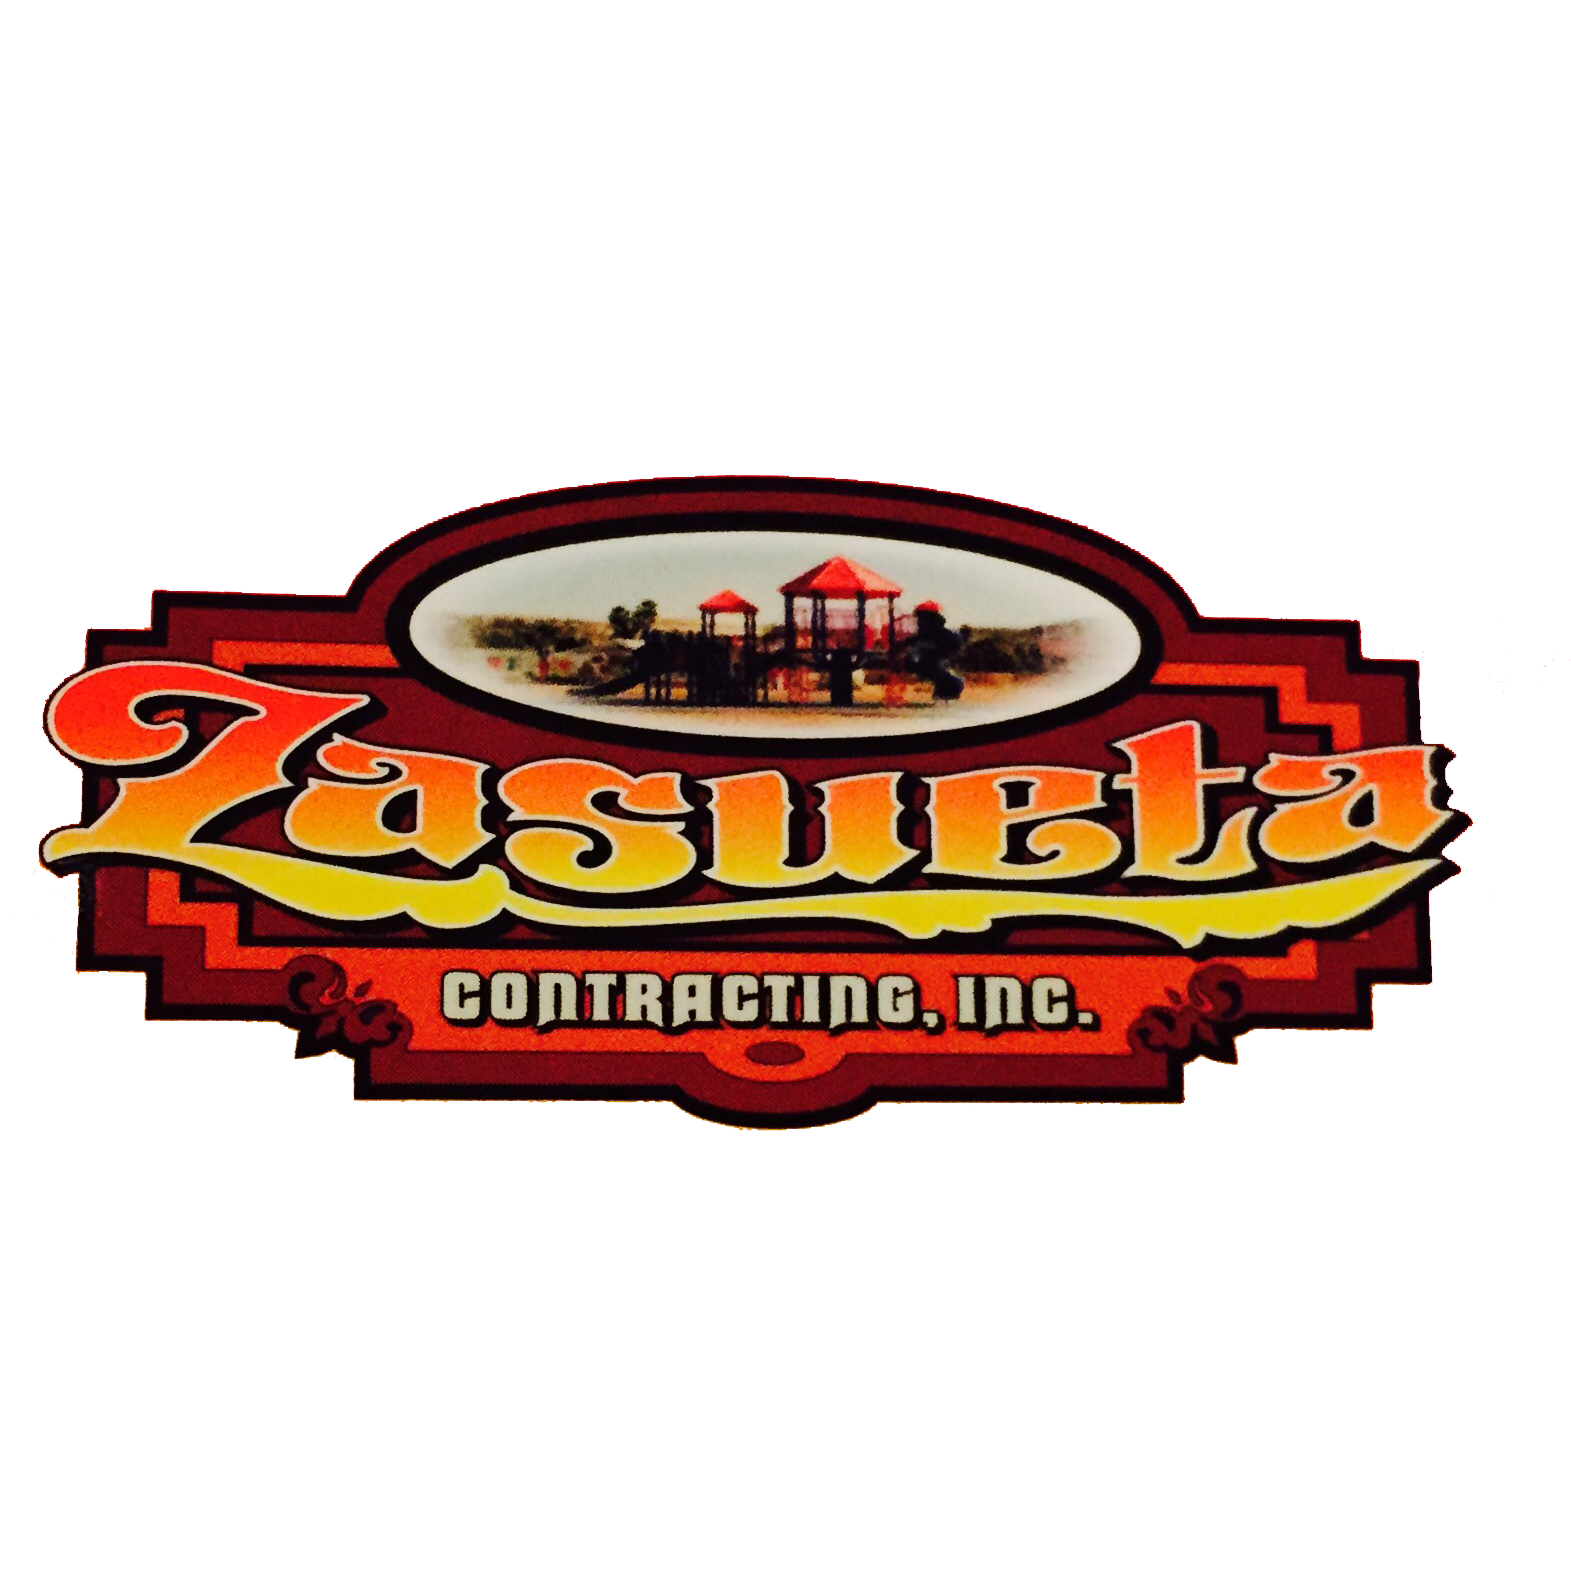 Zasueta Contracting, Inc. - Spring Valley, CA - Swing Sets & Playgrounds